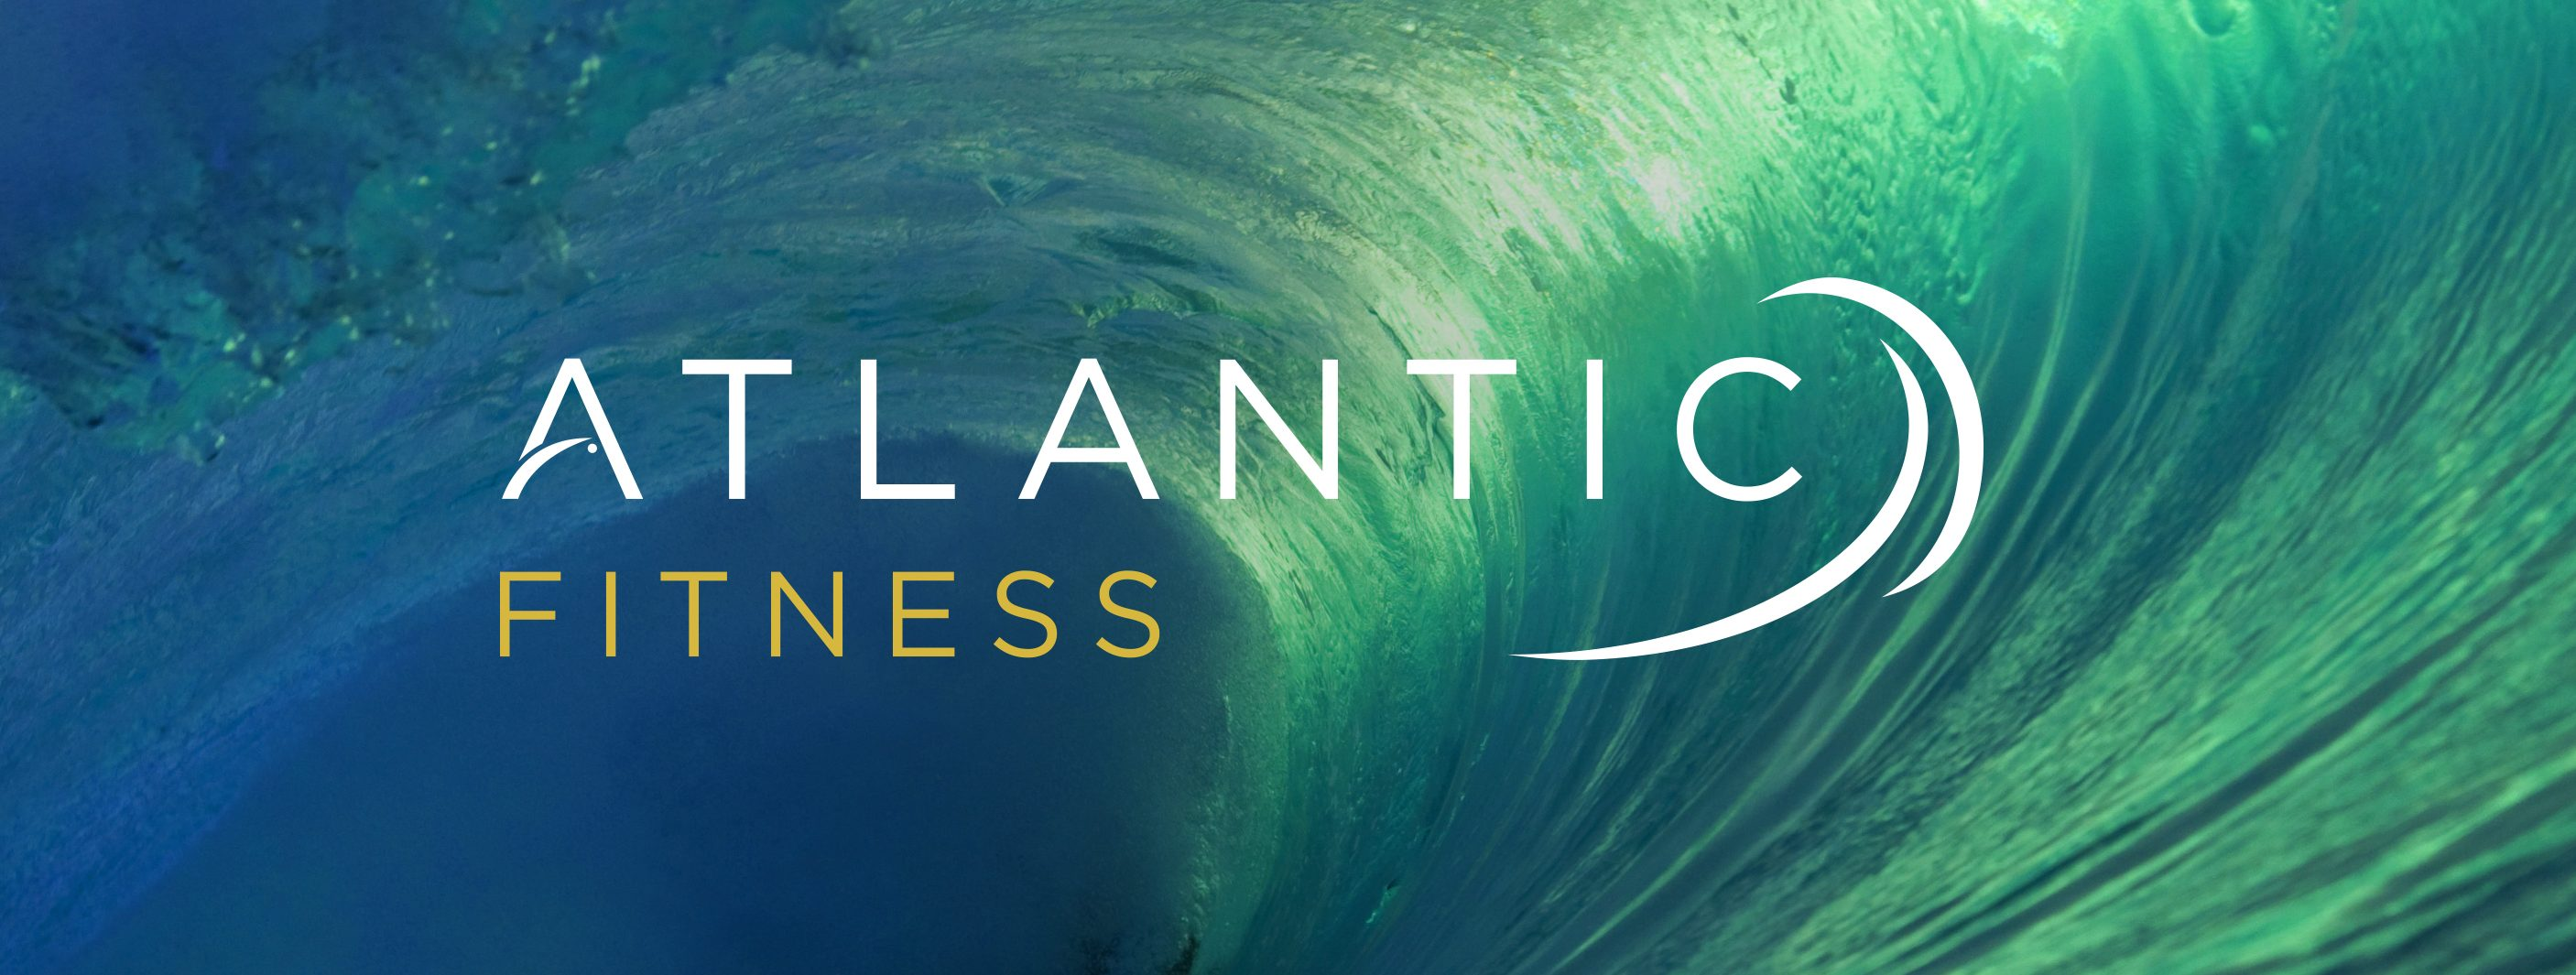 Atlantic Fitness